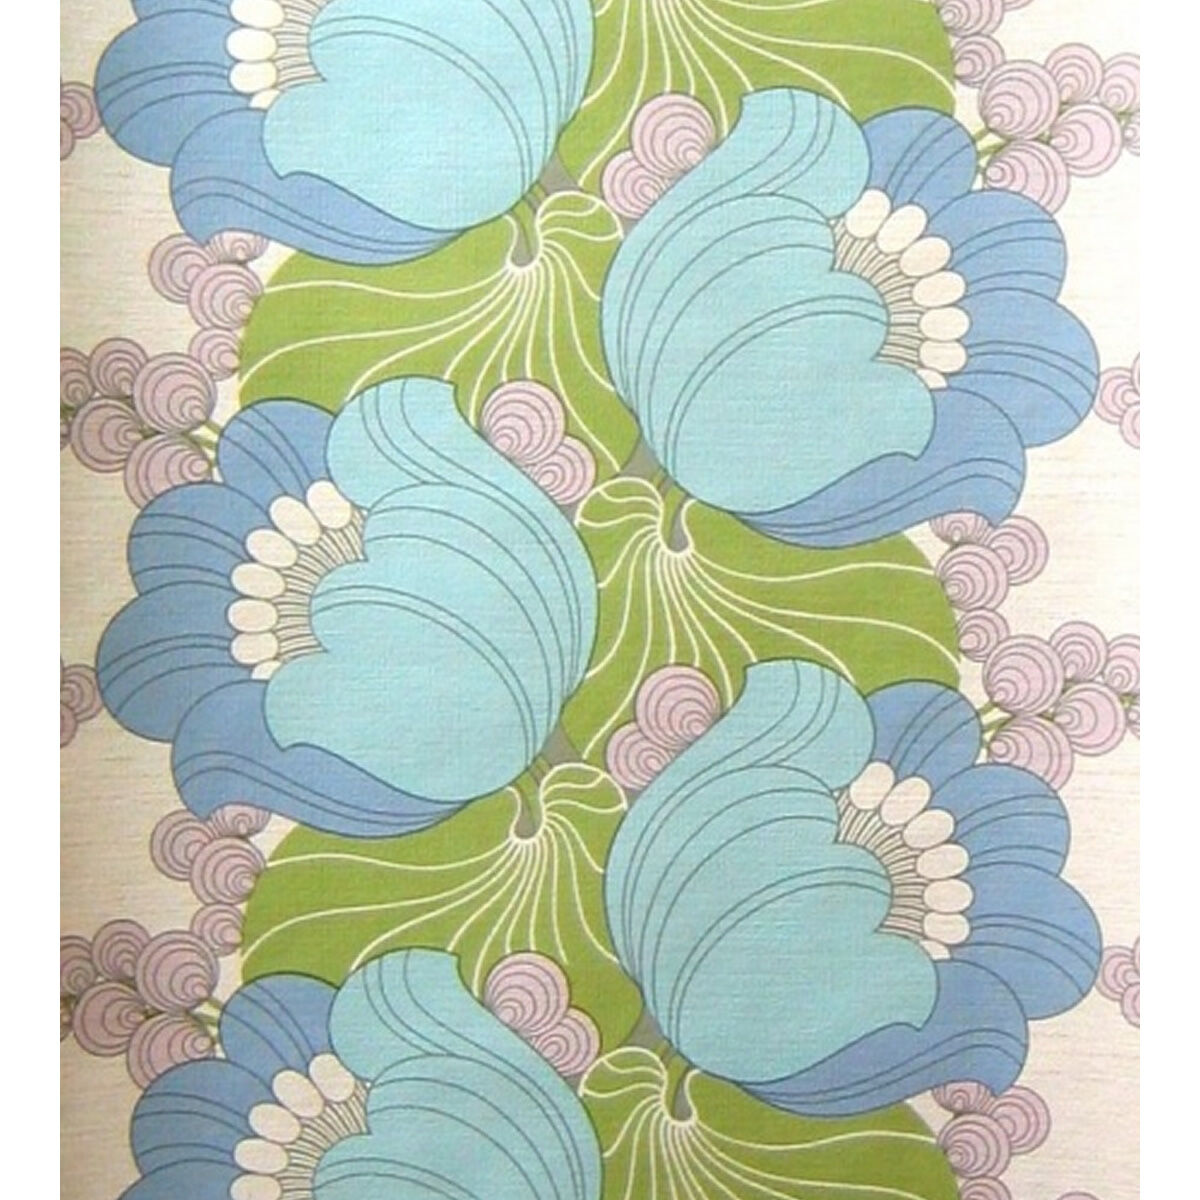 Groovin To the Blaus Vintage Flowers Wallpaper Retro Orignal Floral 1960s 1970s